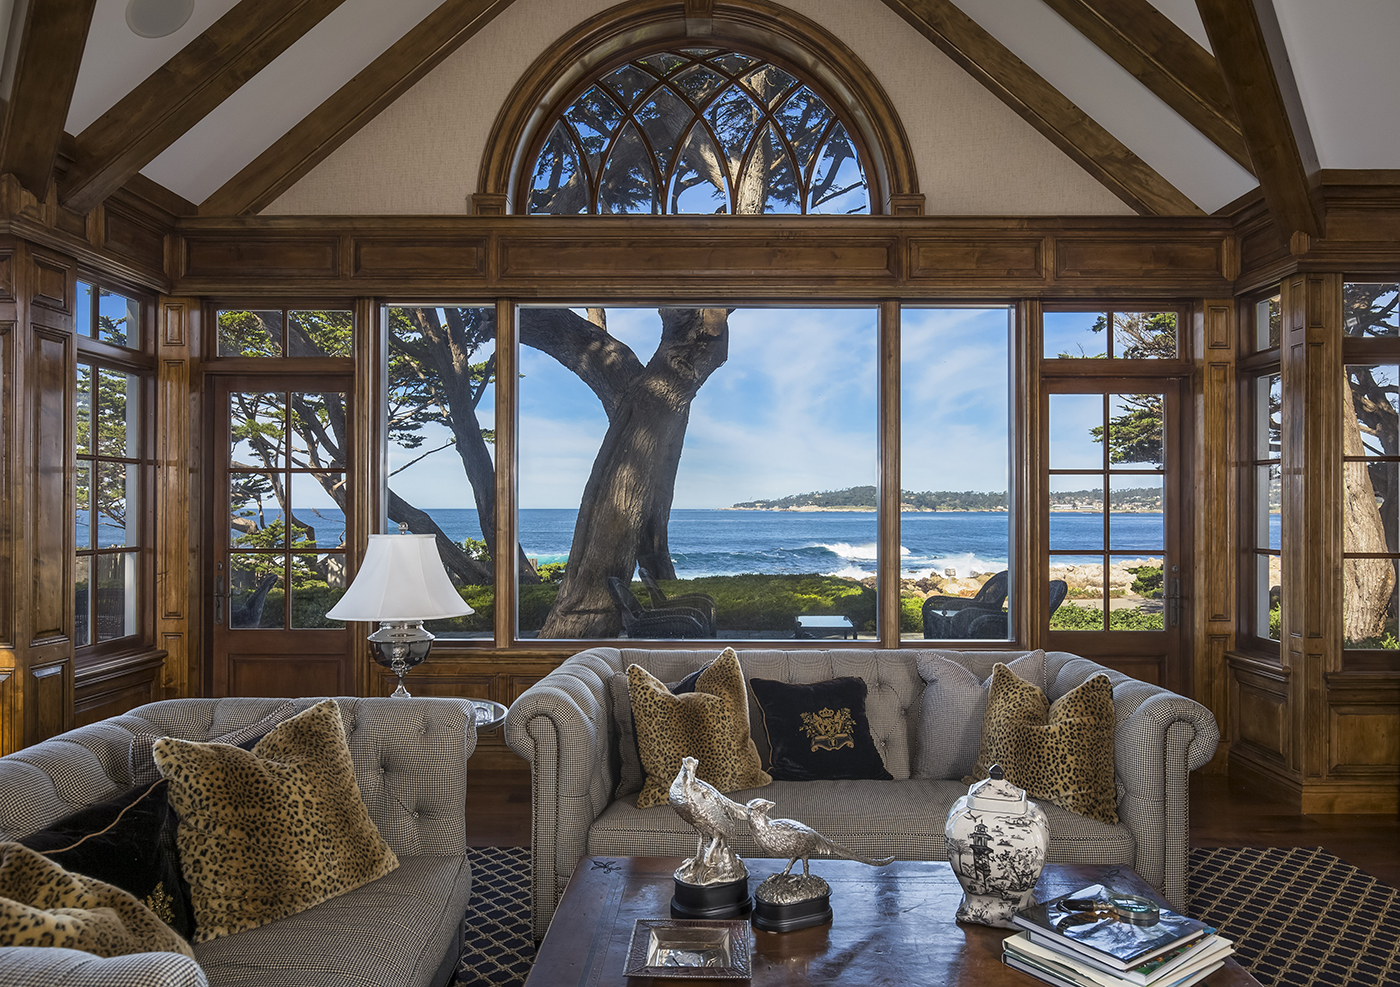 11 Ocean View - Family Room with view towards Pebble beach.jpg